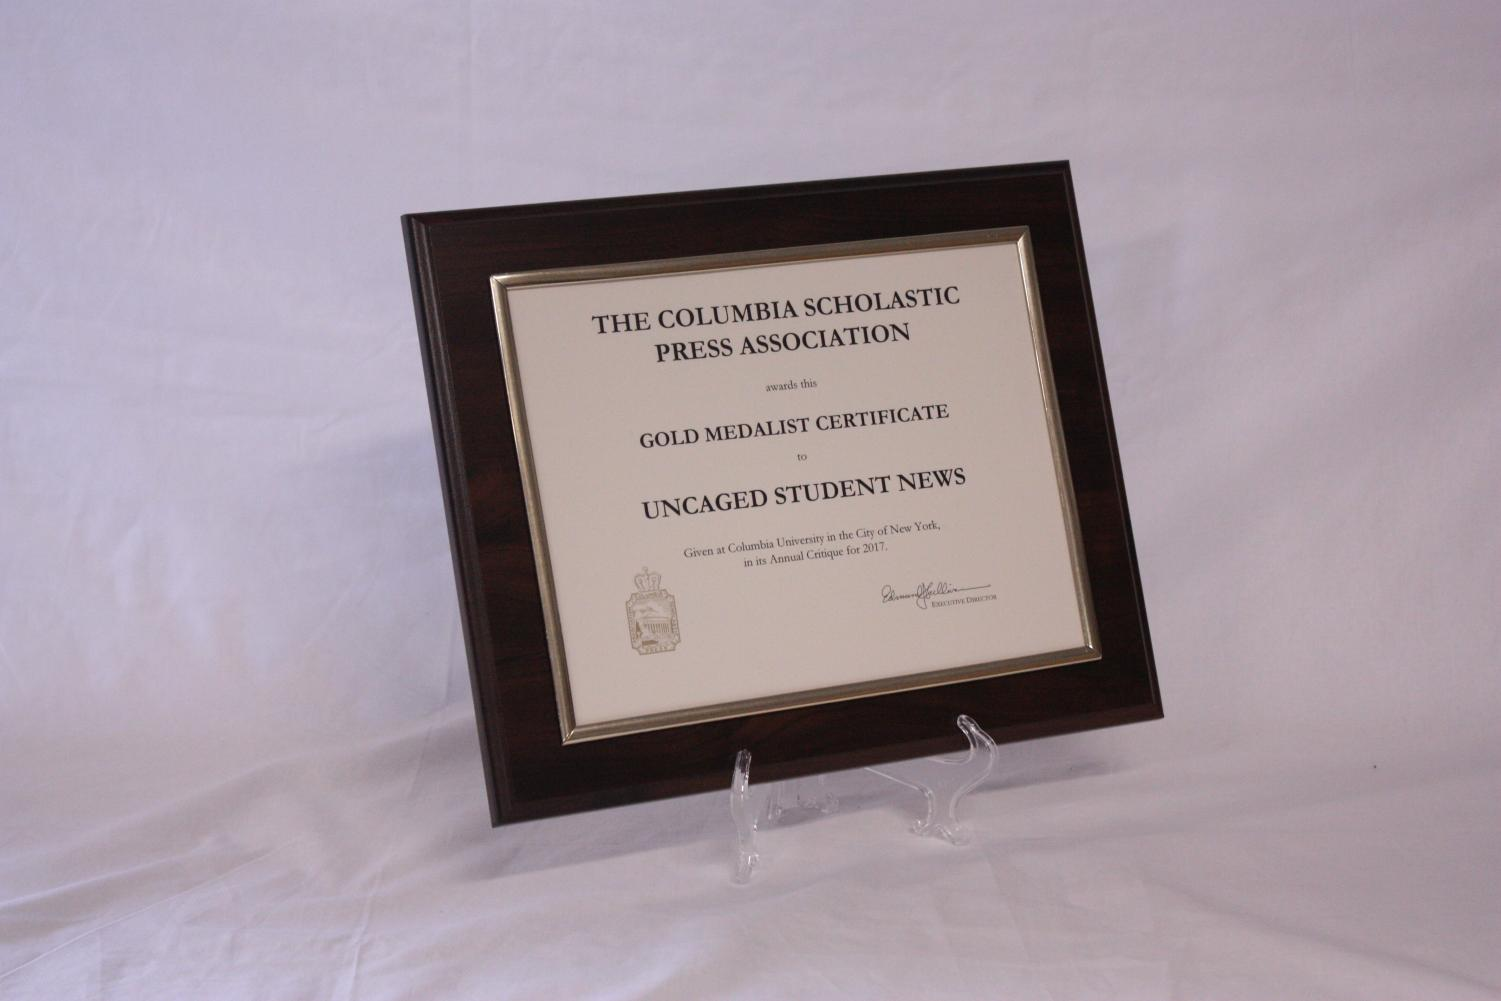 The+Columbia+Scholastic+Press+Association+gives+the+Gold+Medalist+Certificate+to+Uncaged+Student+News